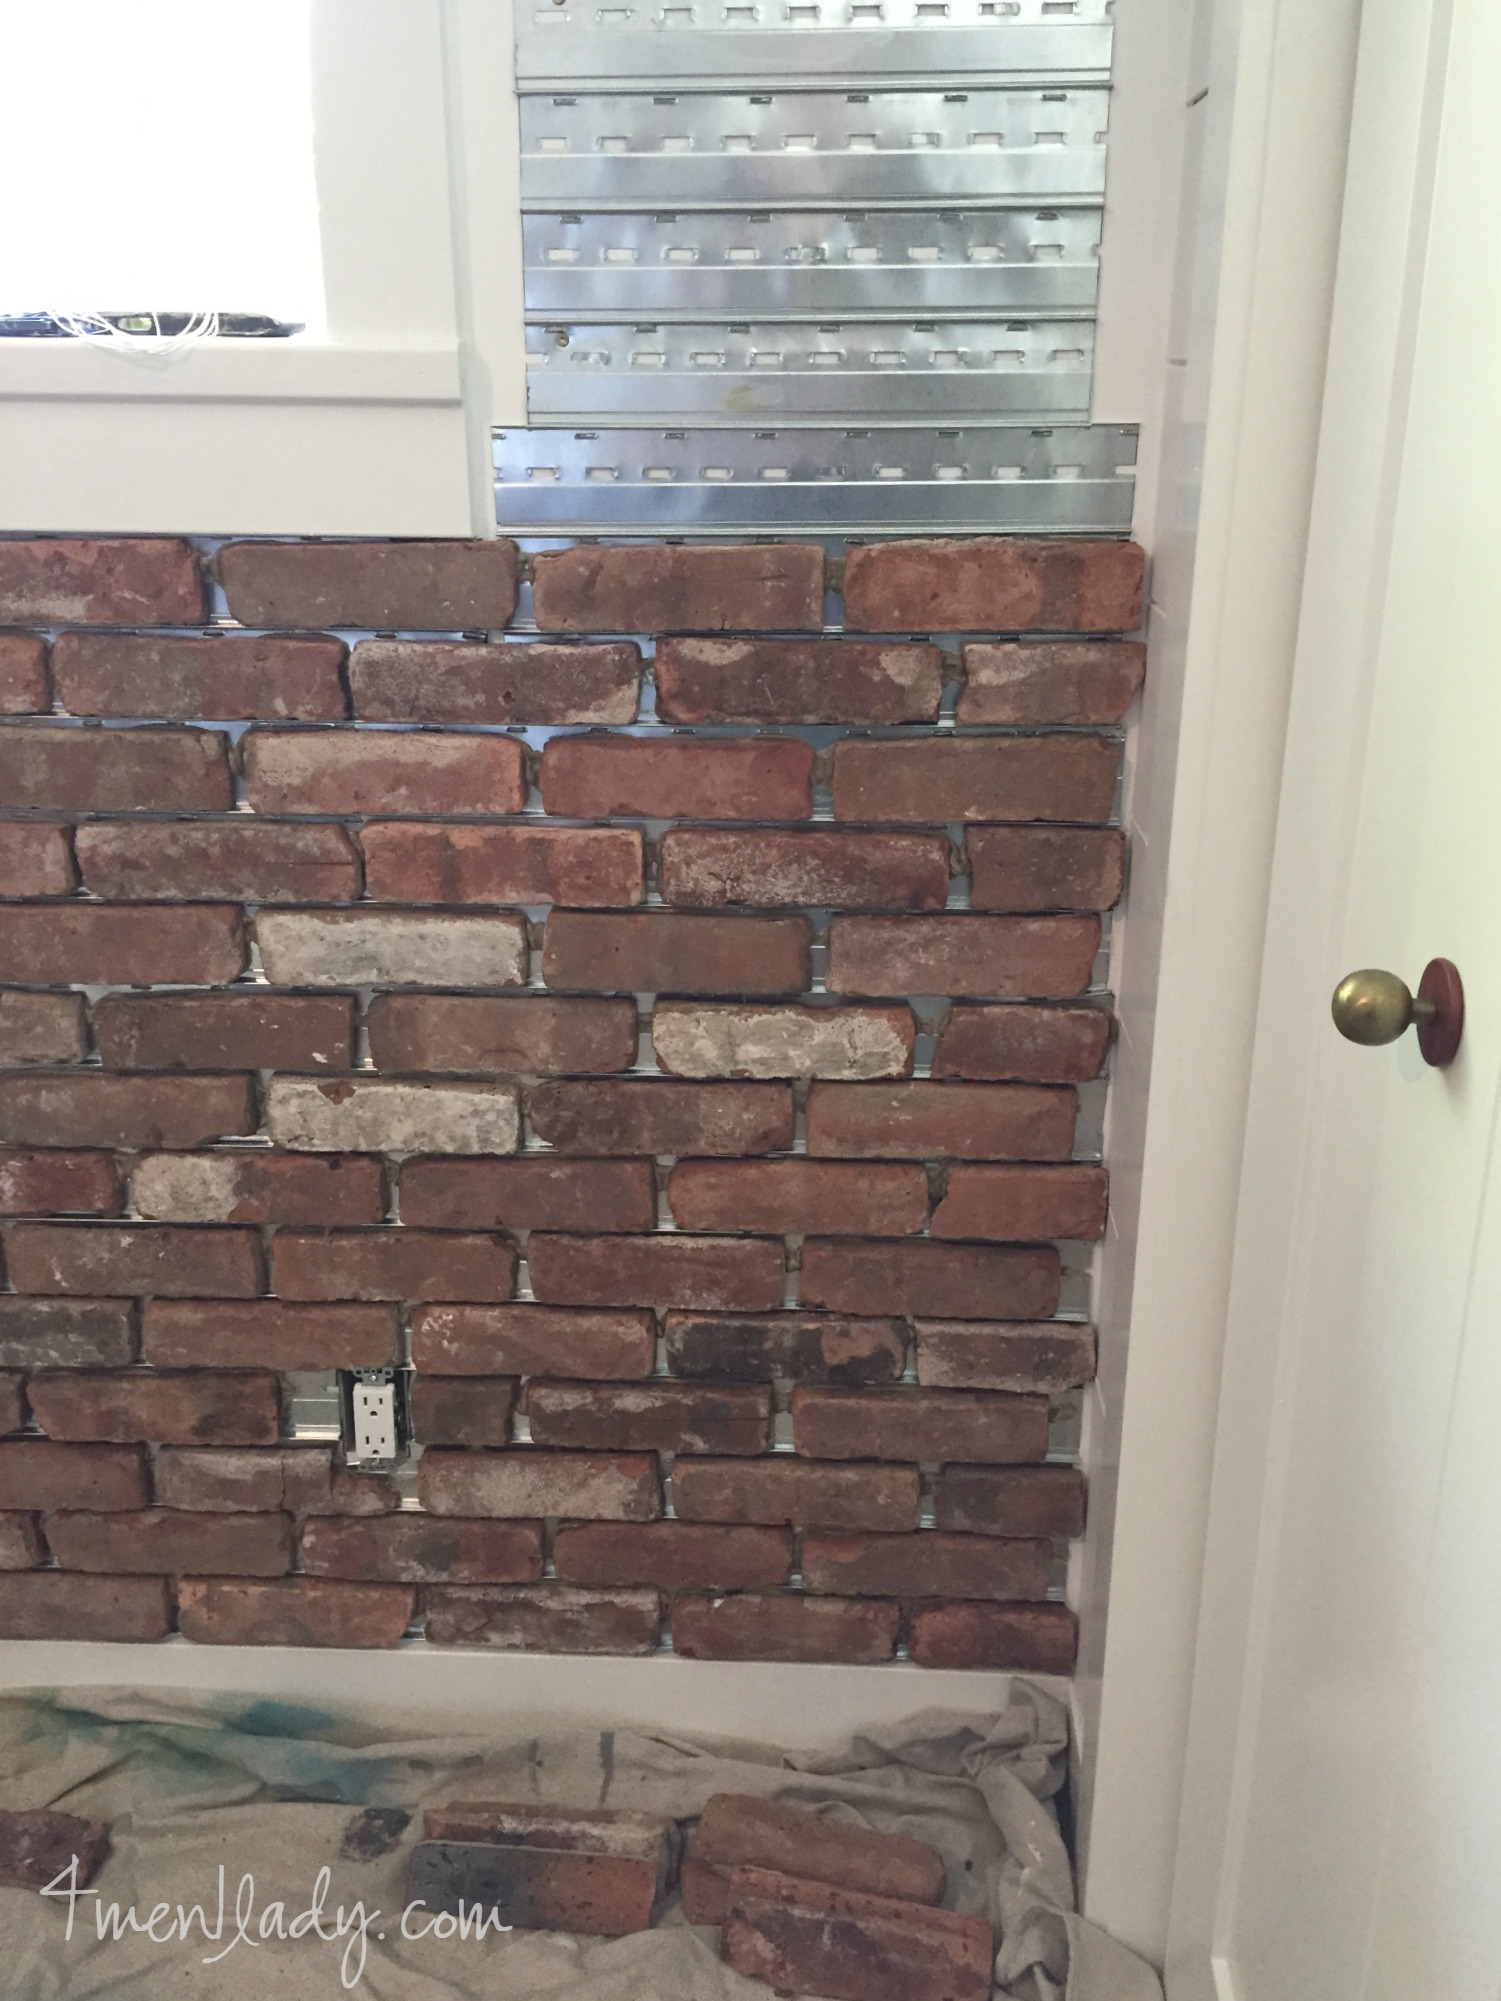 Brick Veneer Wall Anchoring Systems For Brick Veneer Walls